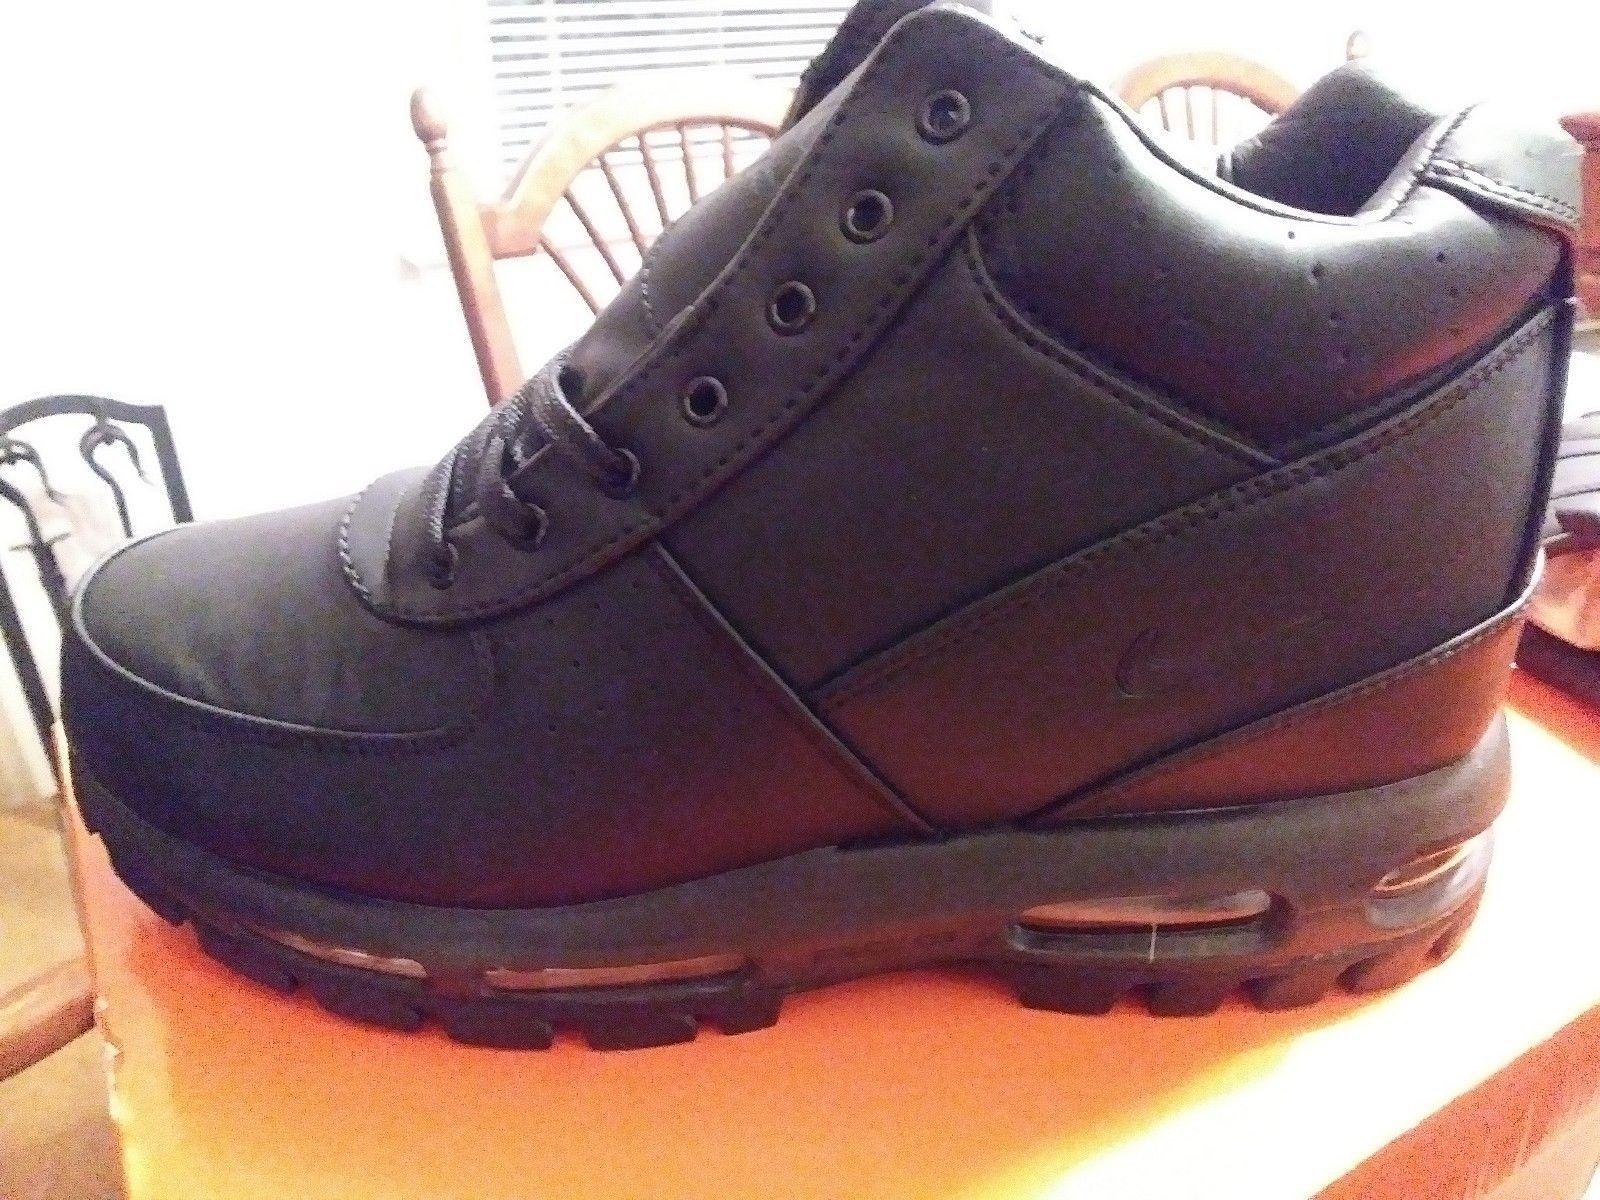 huge discount a3cb7 56312 Mens ACG boots Black-Size 9.5 and 50 similar items. S l1600